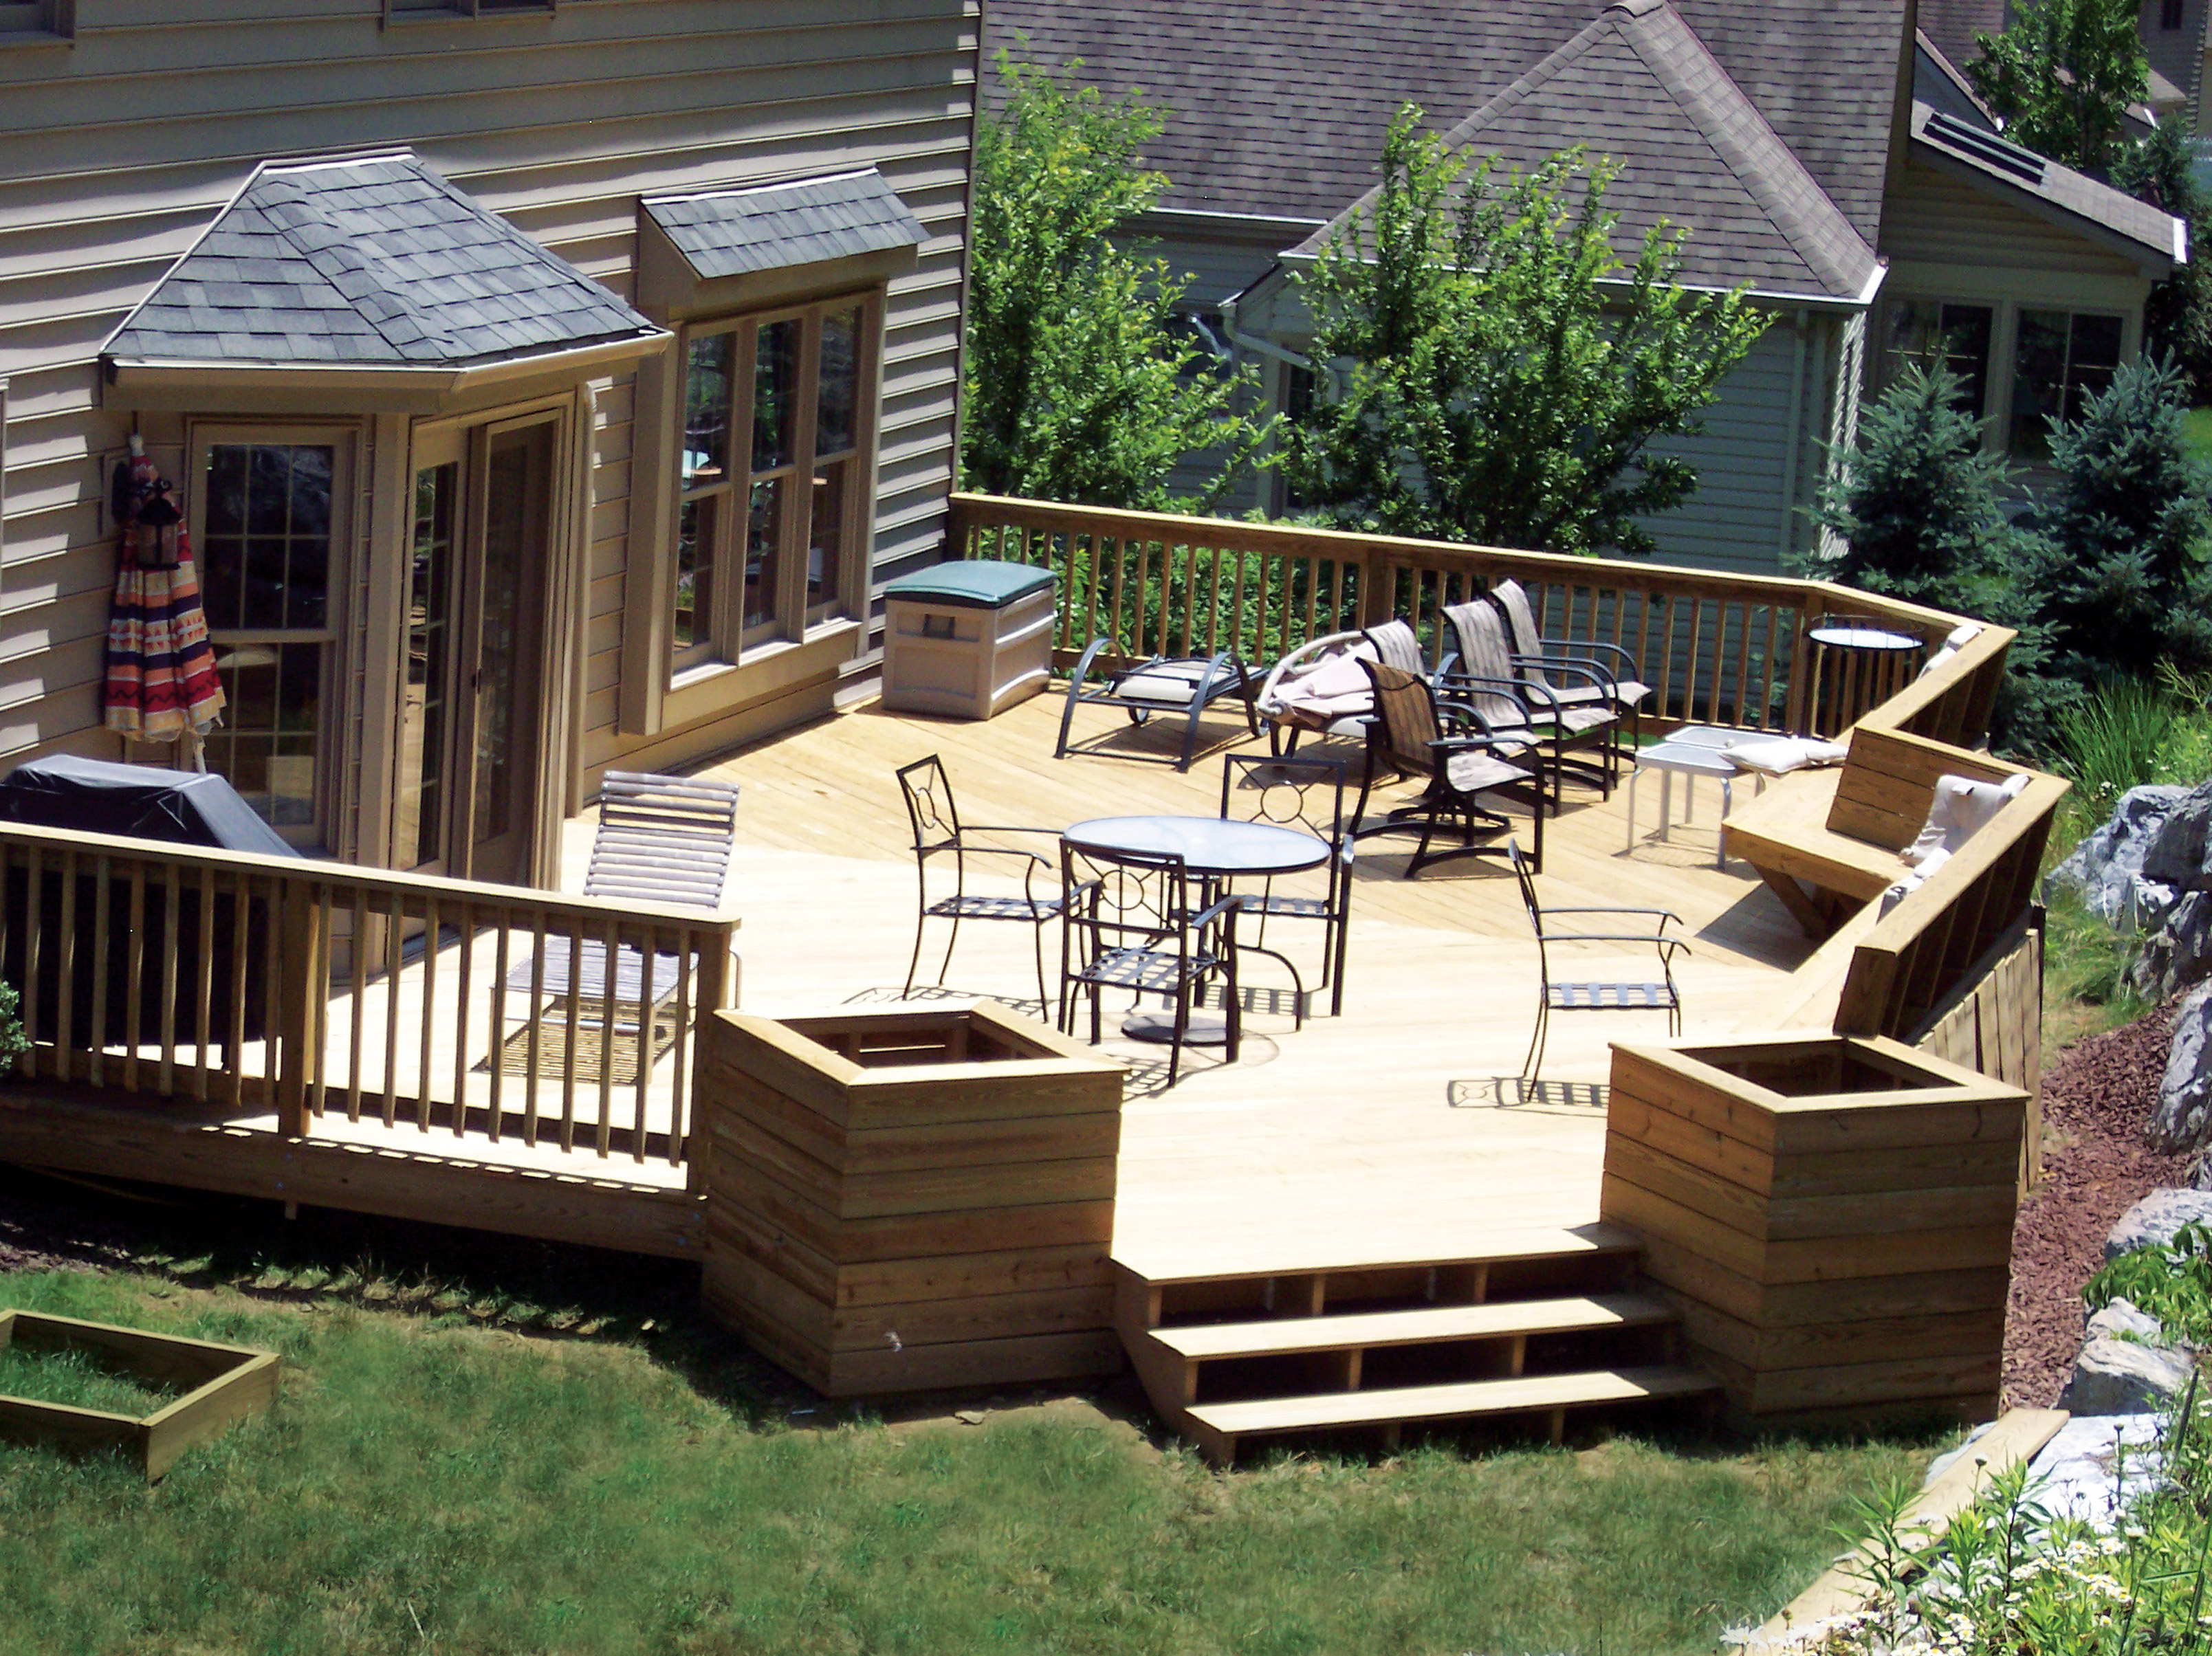 Deck Design Ideas view in gallery wooden deck design ideas and pictures decks design ideas Simple Backyard Deck Designs Simple Deck Designs Pertaining To Inspire Deck Design Ideas Deck Design Ideas